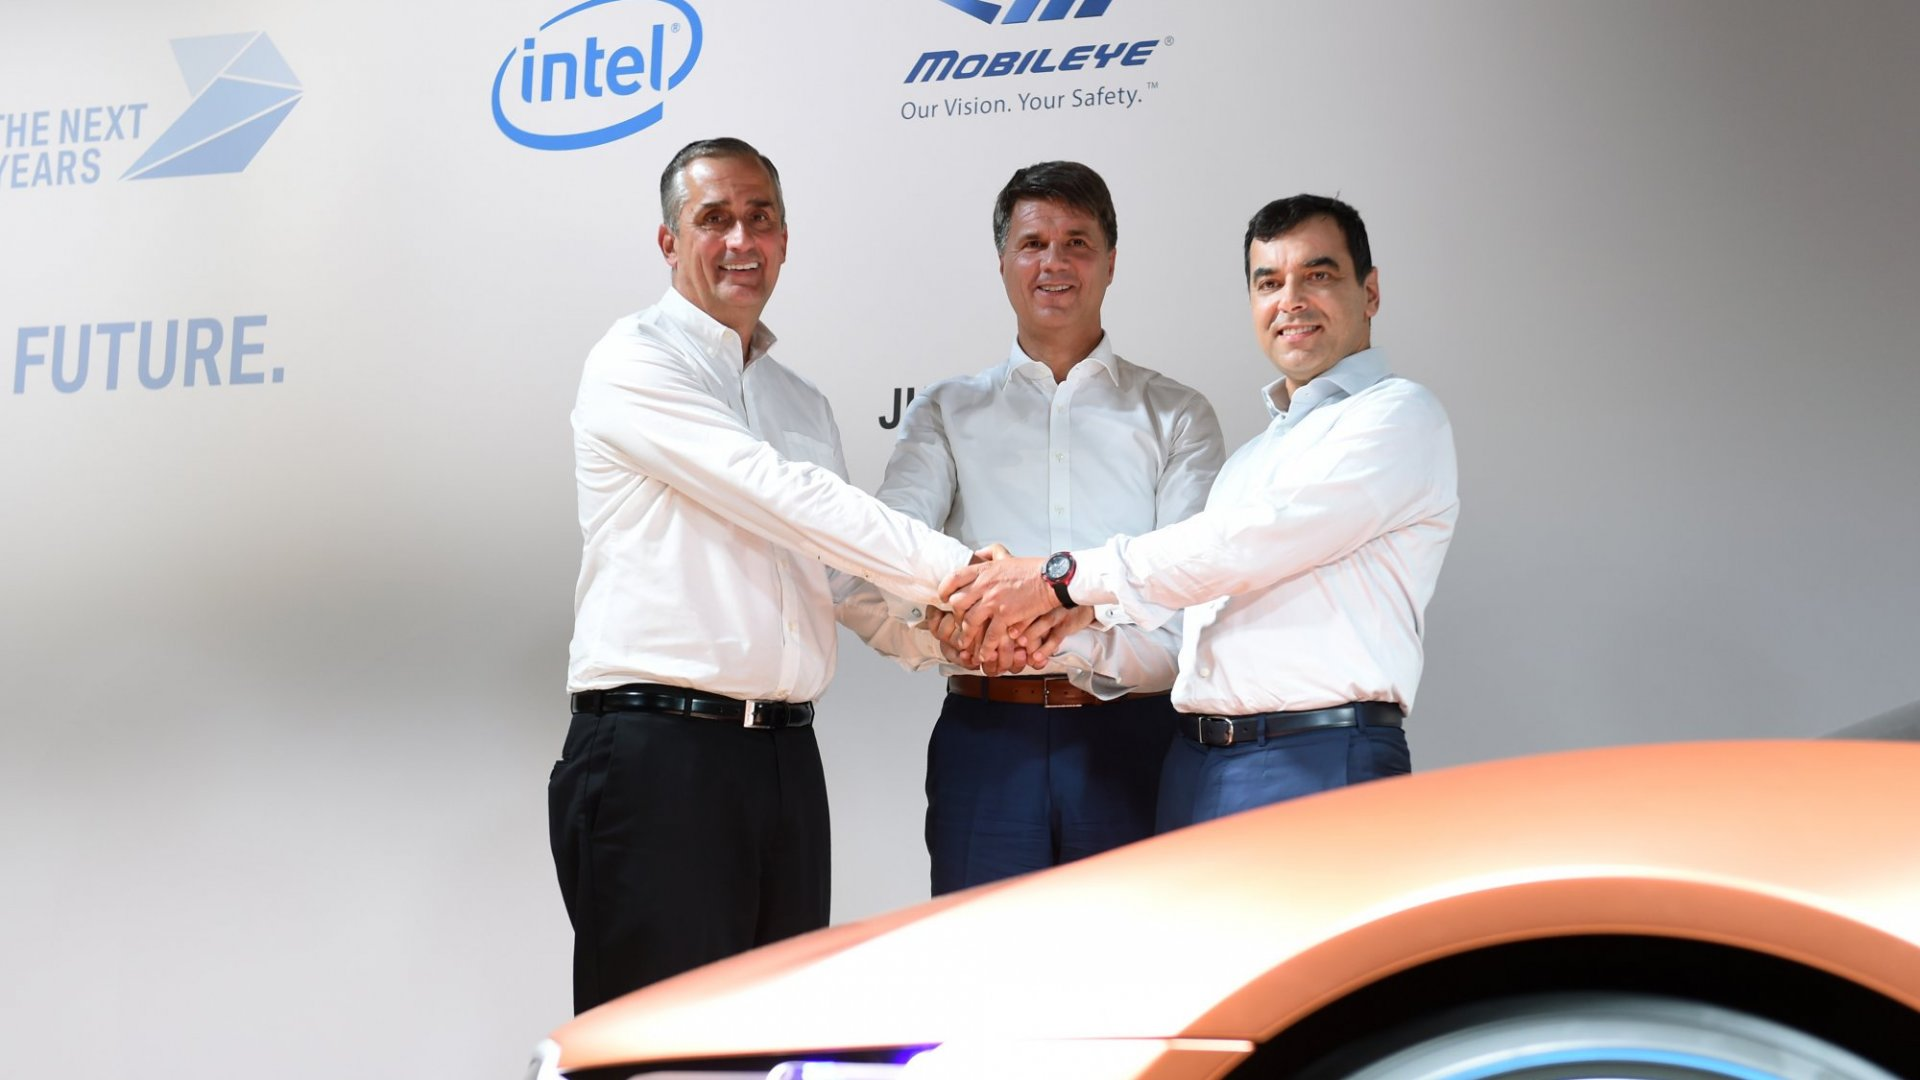 Why Intel Is Investing in Self-Driving Cars